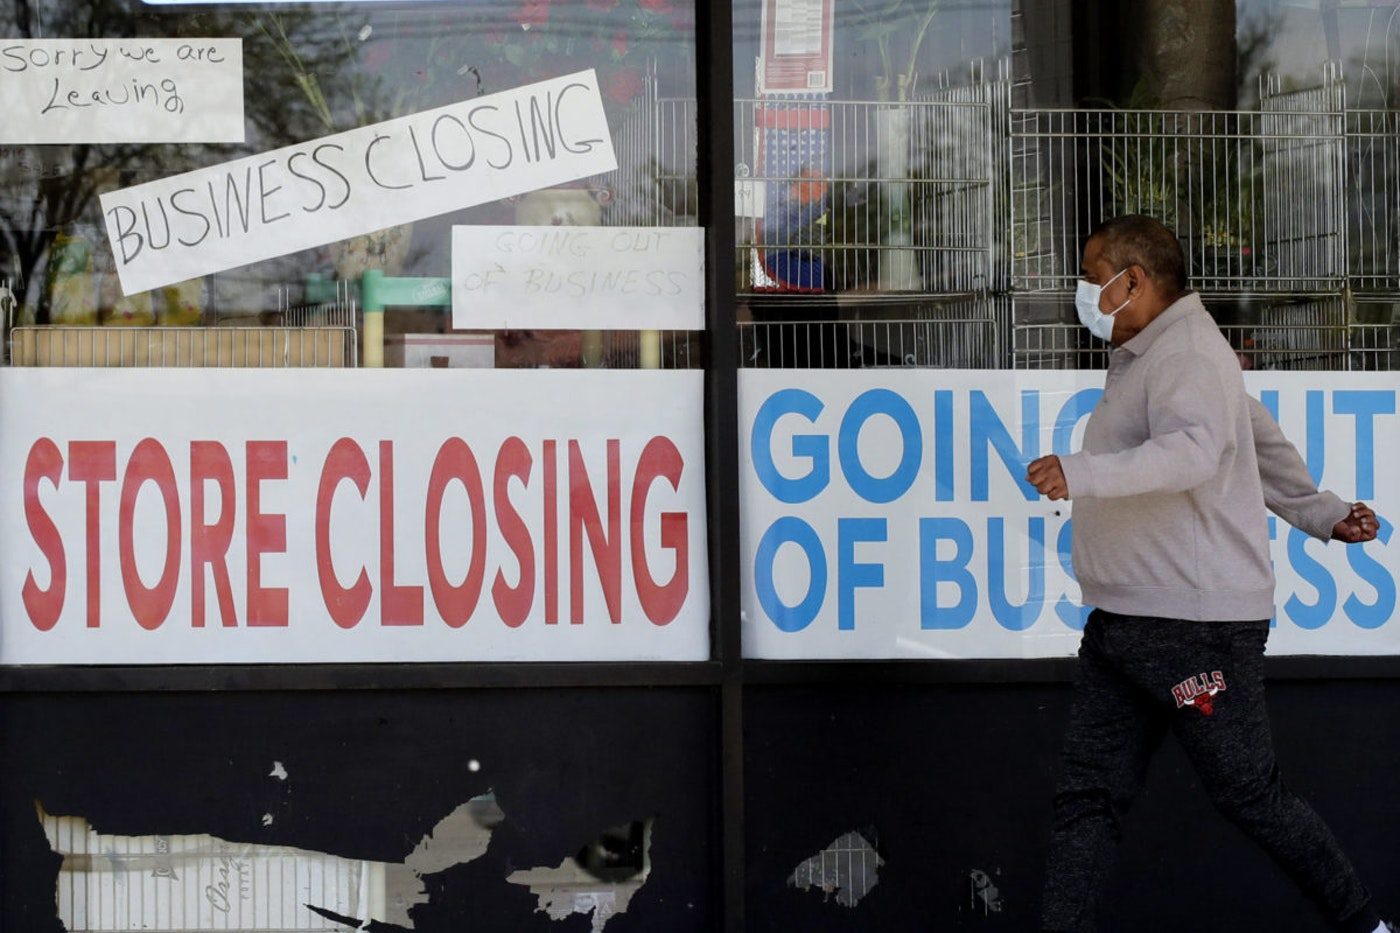 In this May 21, 2020 file photo, a man looks at signs displayed of a store closing due to the coronavirus pandemic in Niles, Ill. The viral pandemic's resurgence caused the number of Americans seeking unemployment benefits to rise last week for the first time in nearly four months, evidence of the deepening economic pain the outbreak is causing. (AP Photo/Nam Y. Huh, File)